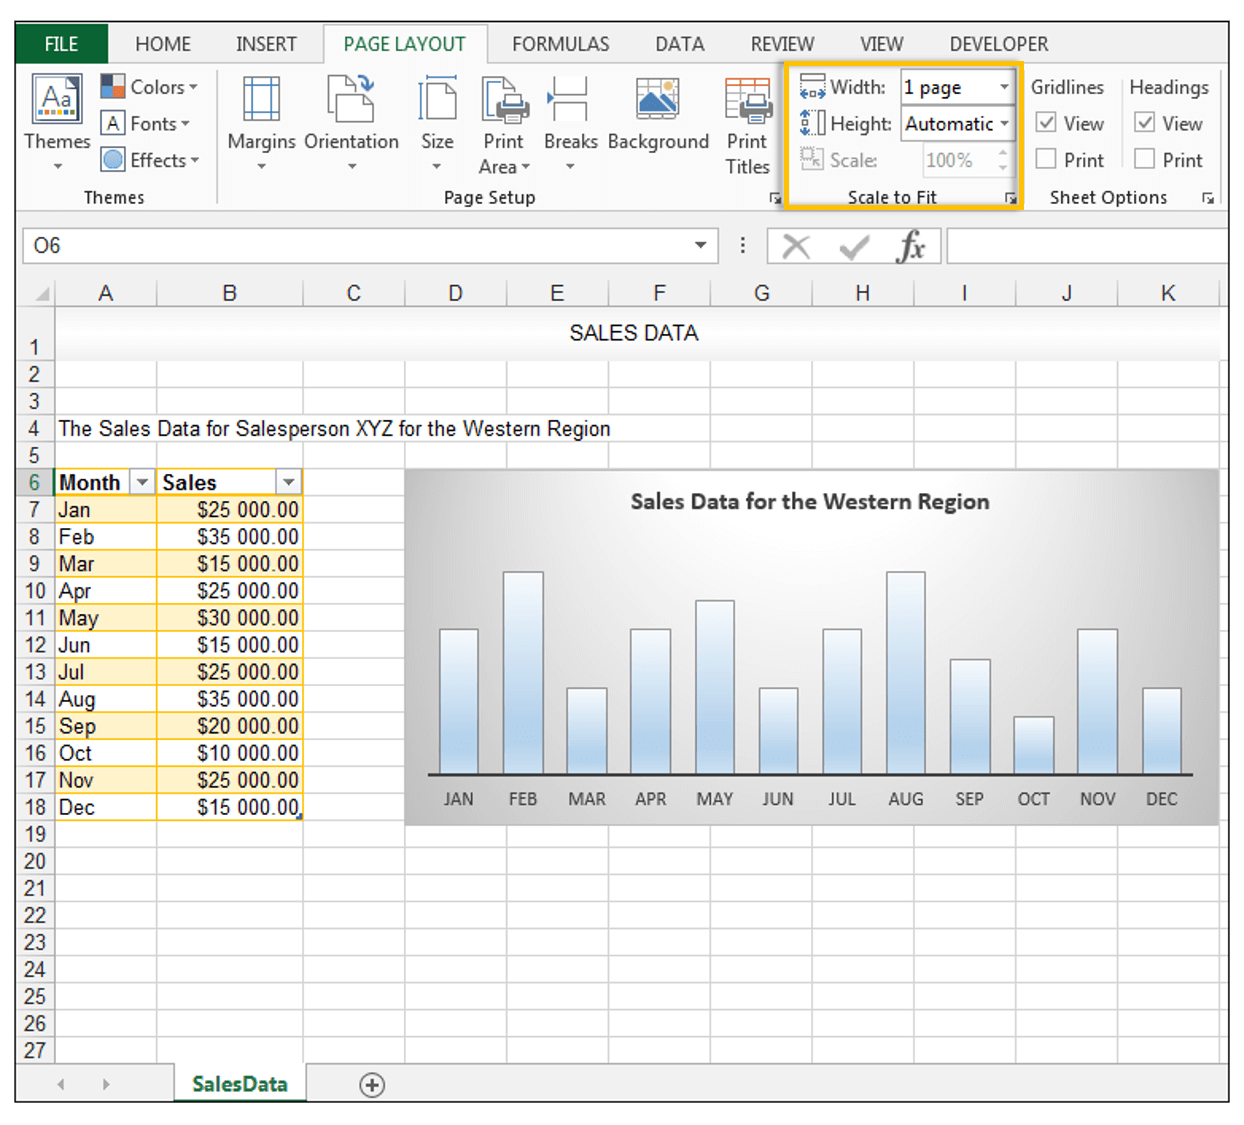 How To Print An Excel Sheet On One Page